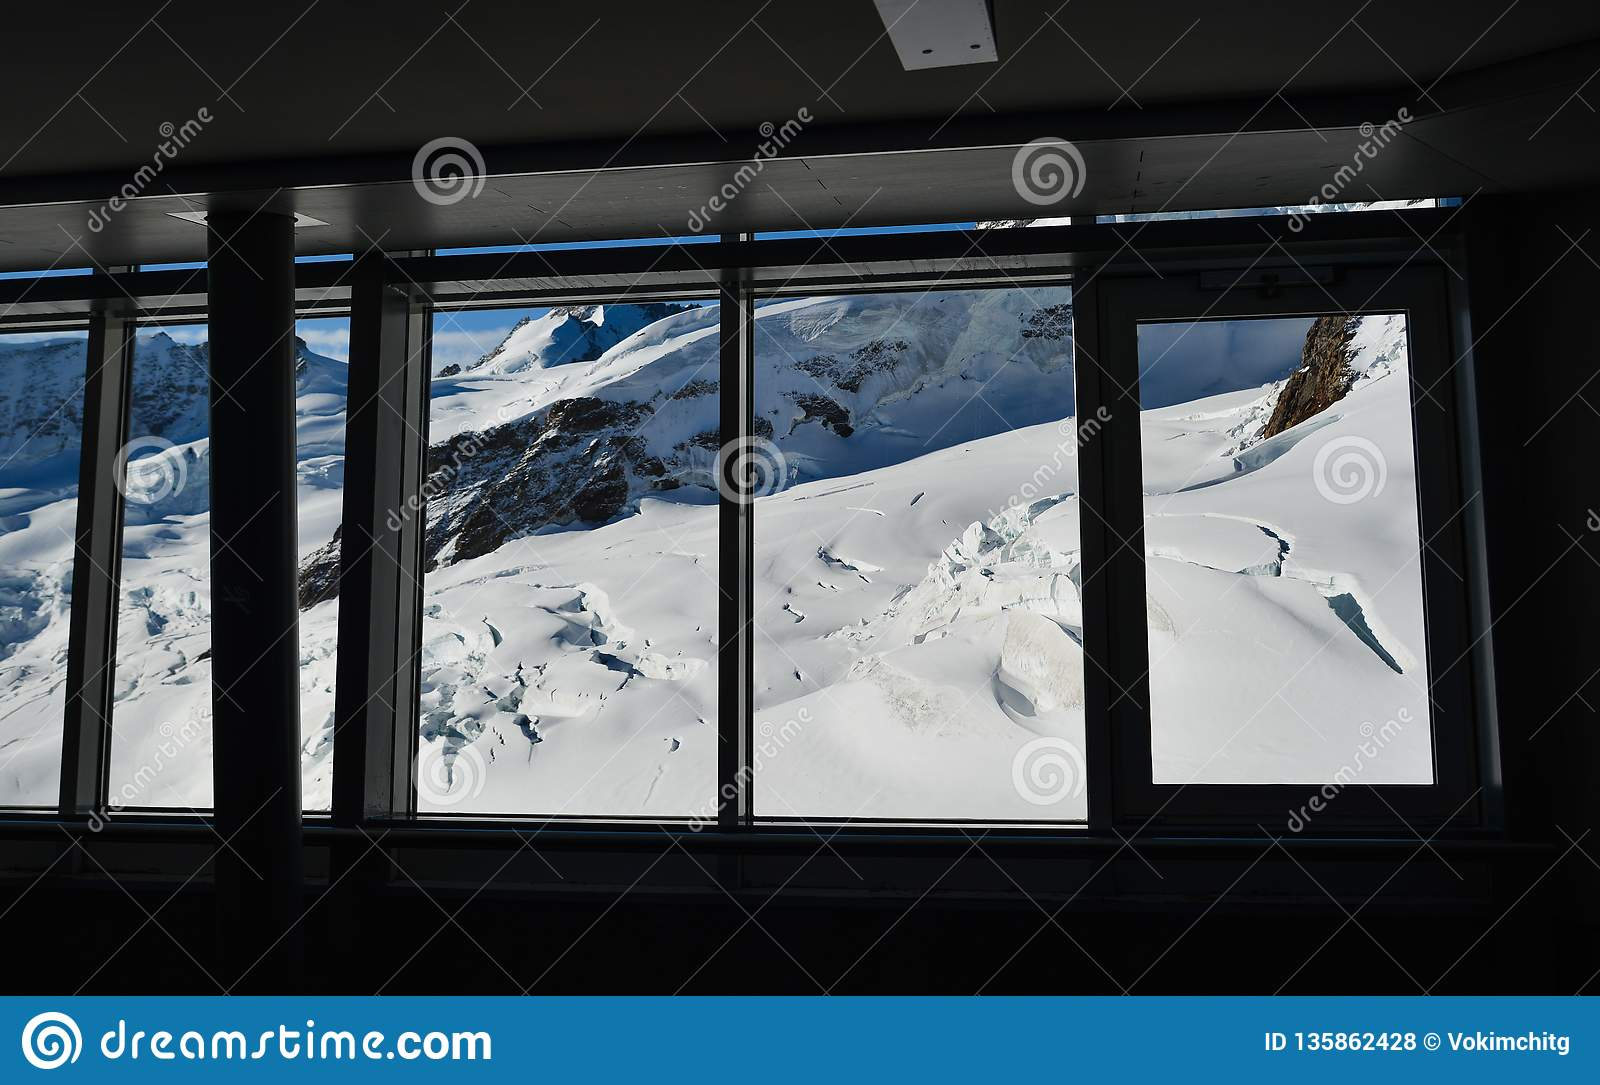 Stunning view of Aletsch glacier from window